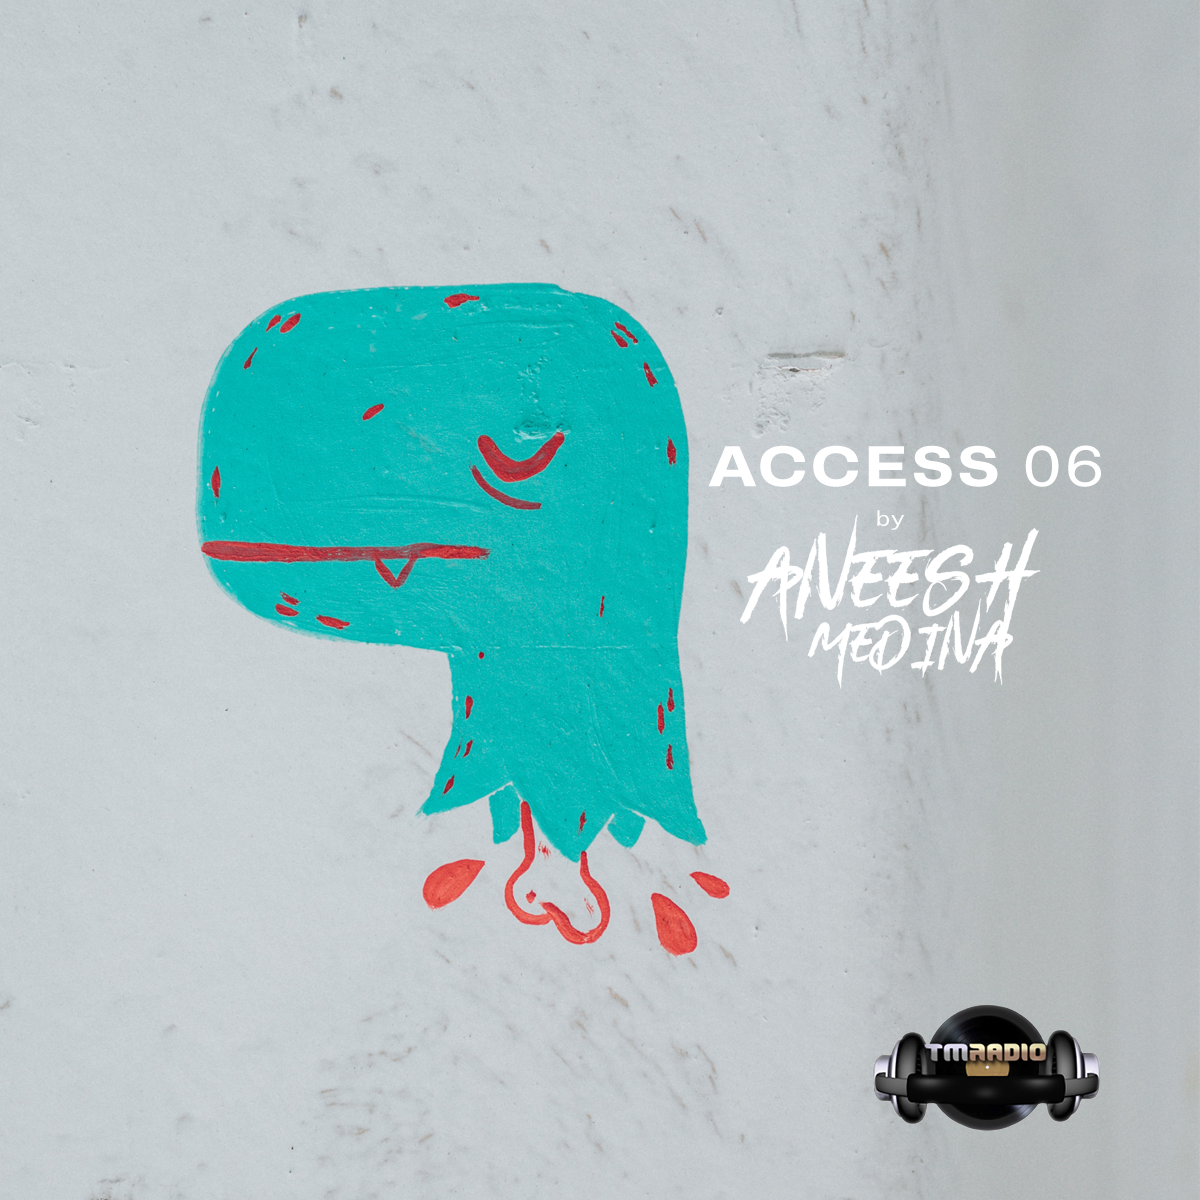 Access :: Episode aired on July 28, 2020, 9pm banner logo